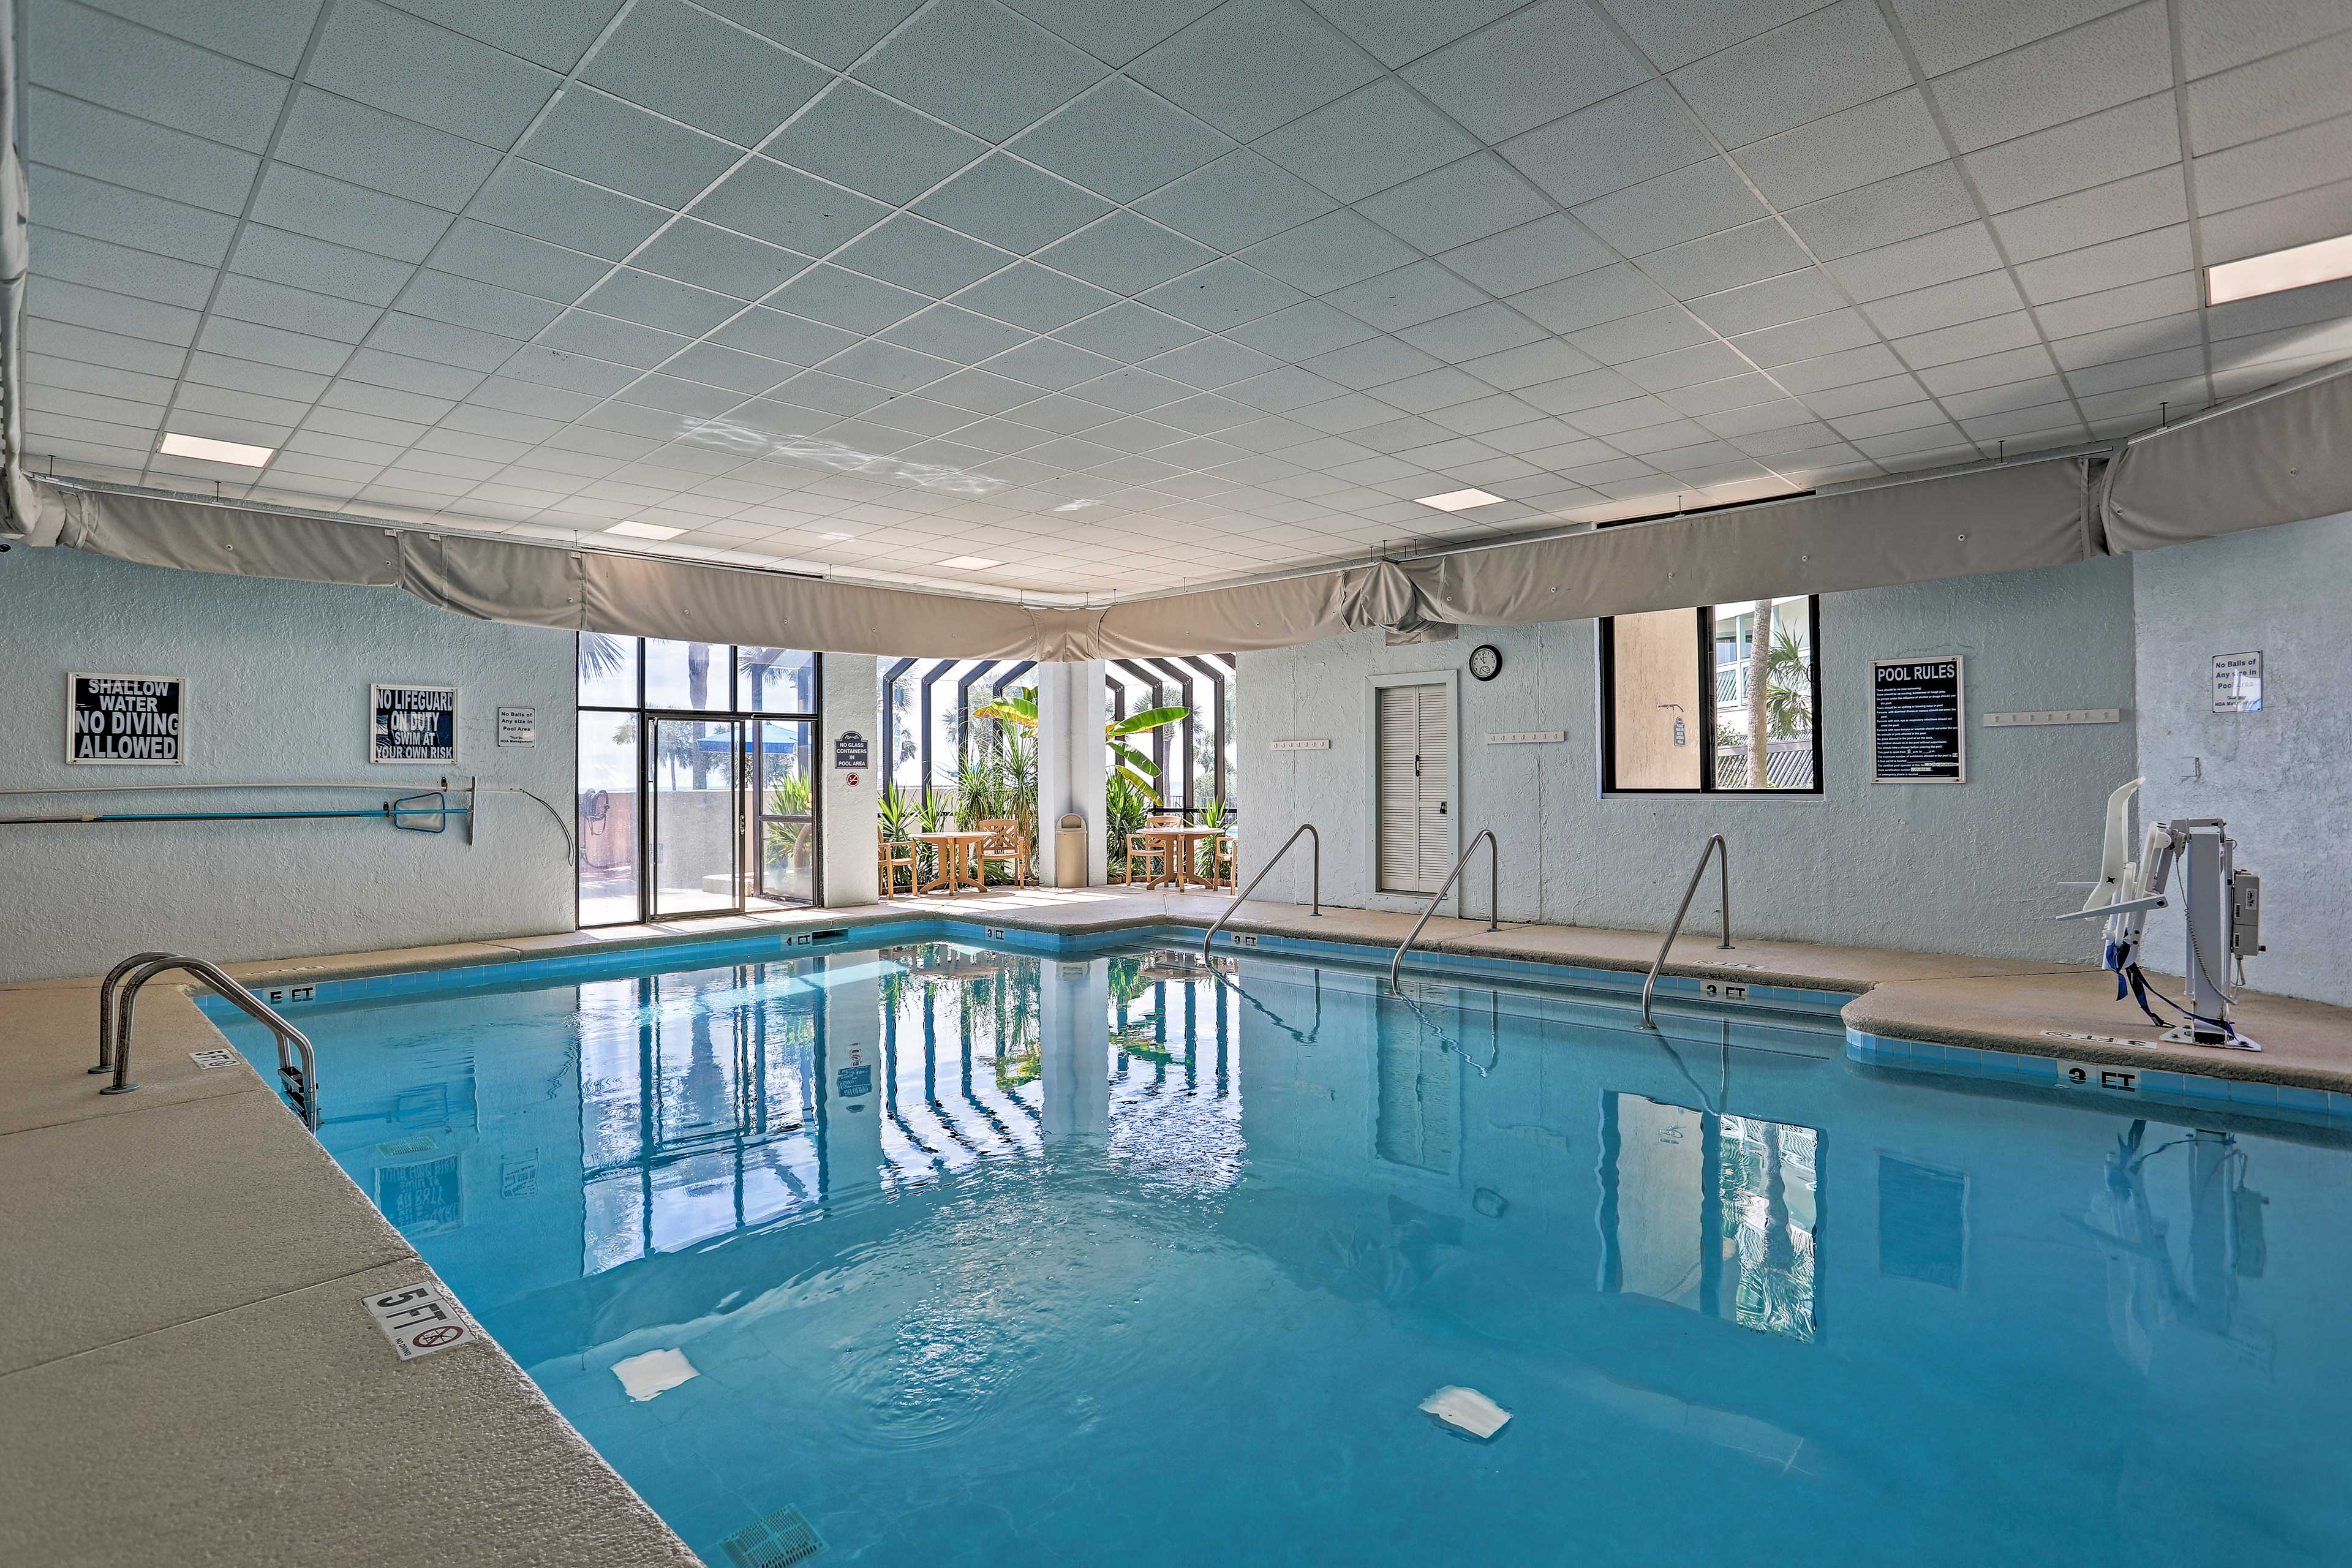 Cool off with a dip in the indoor pool.